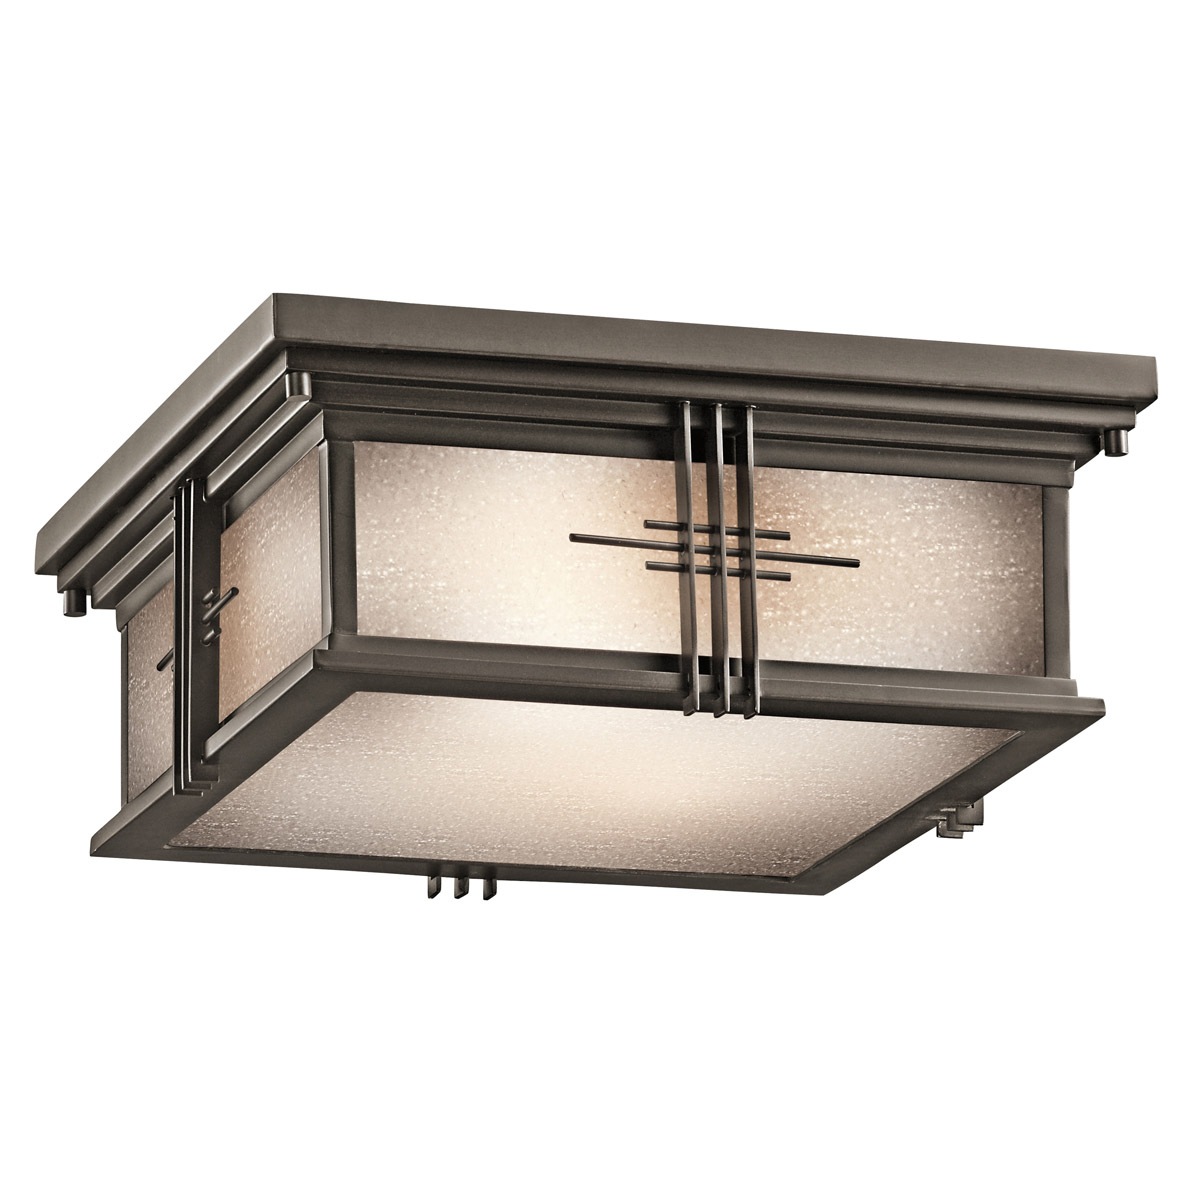 Kichler 49164oz portman square outdoor flush mount ceiling fixture workwithnaturefo